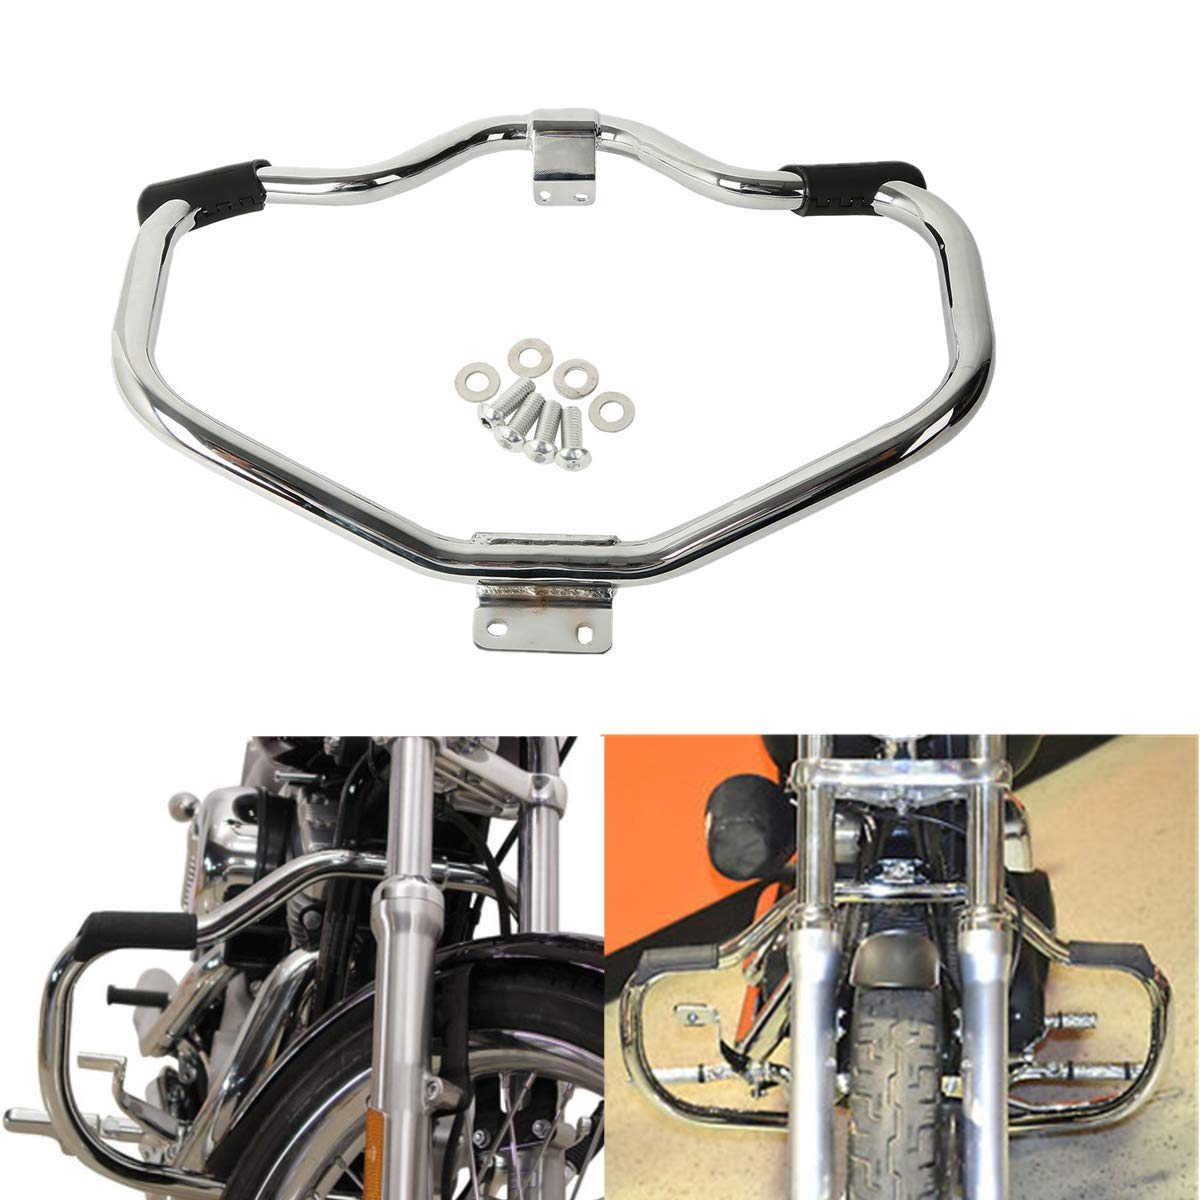 Motorcycle Engine Guard Highway Crash Bar For  Sportster XL 883 XL 1200 04-18 Plating